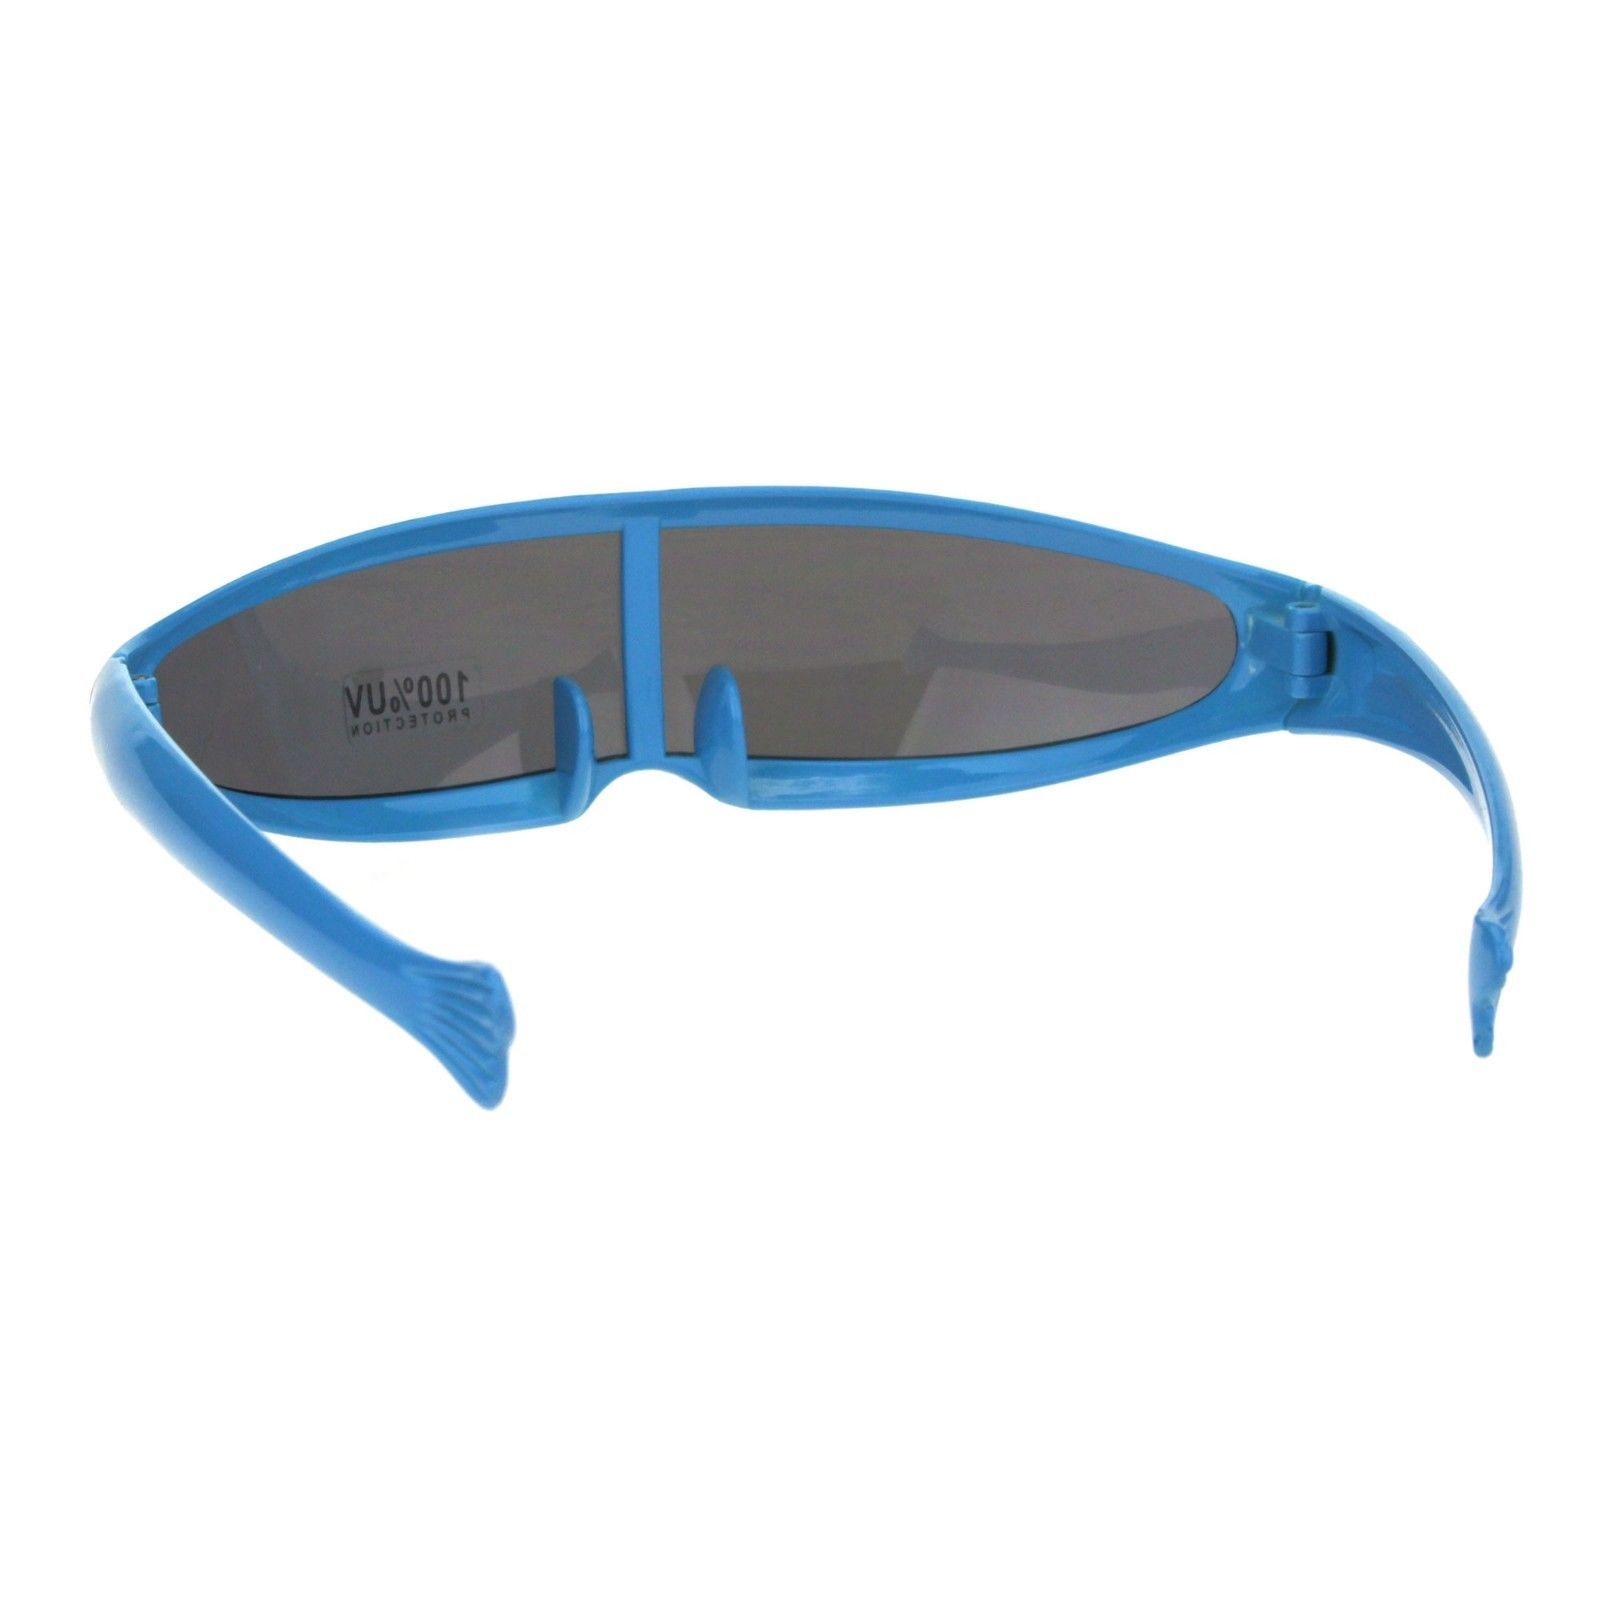 Cyclops Robot Costume Sunglasses Party Rave Futuristic Shades UV 400